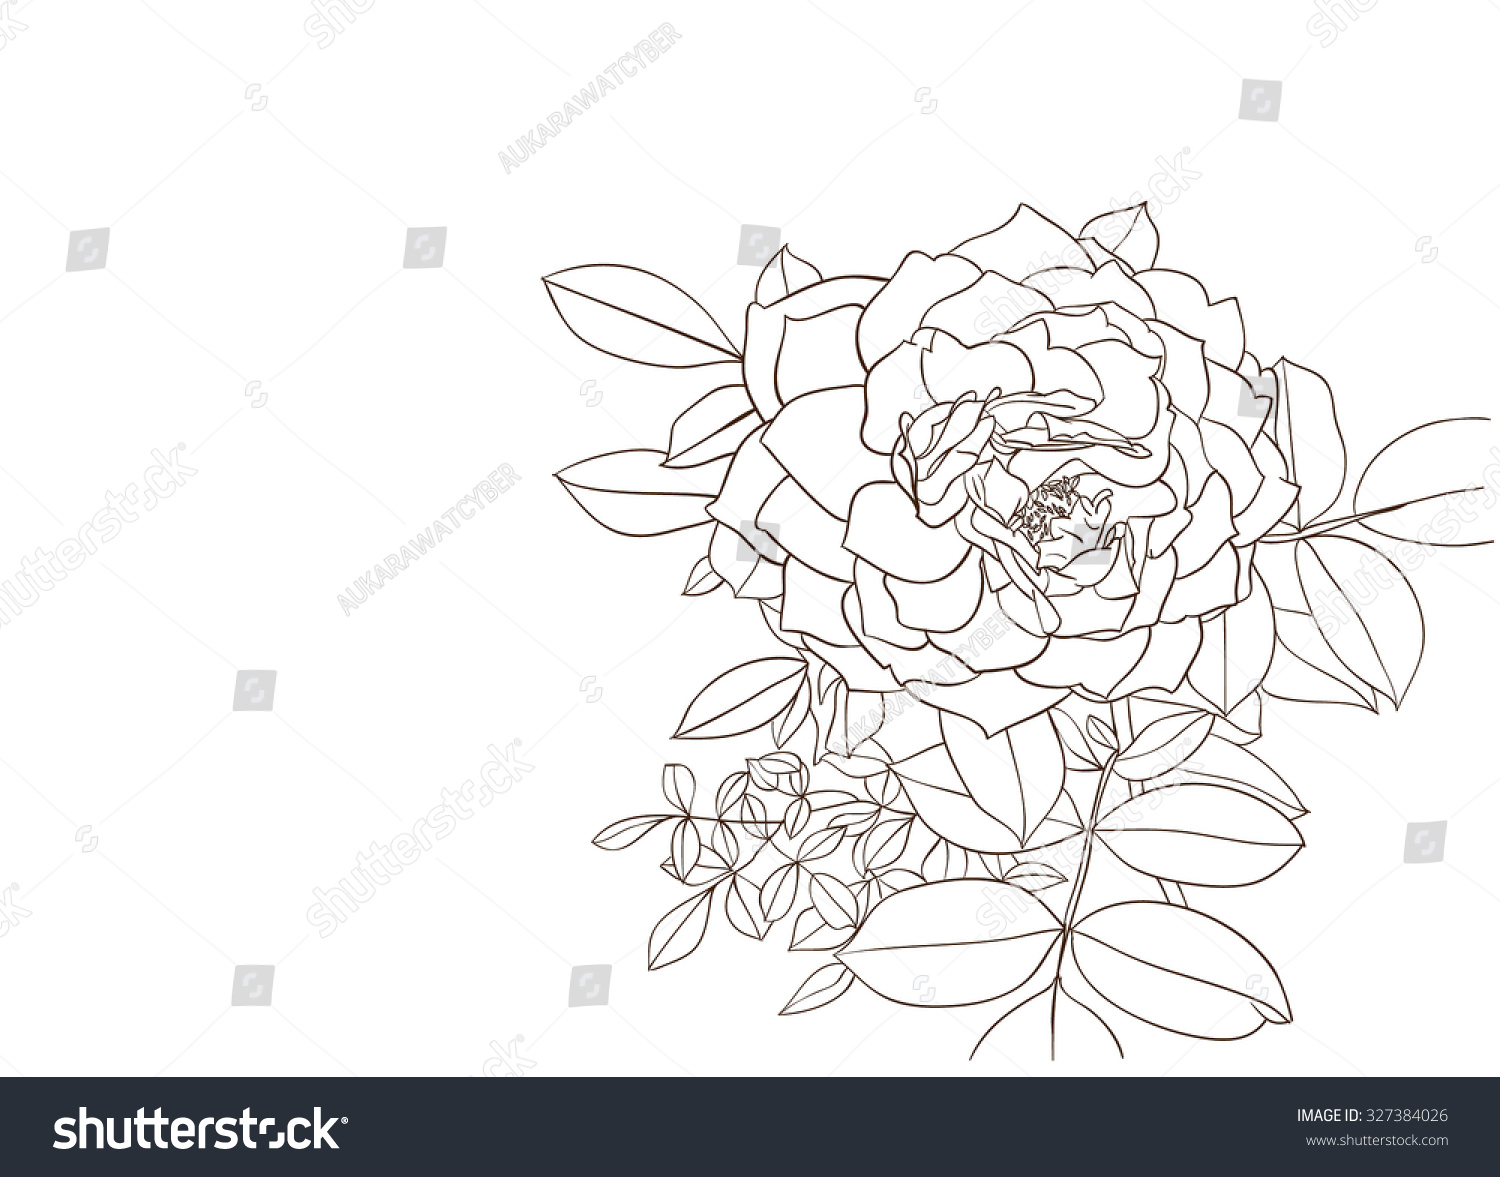 Contour Line Drawing Rose : Chinese style drawings sketches peony ez canvas